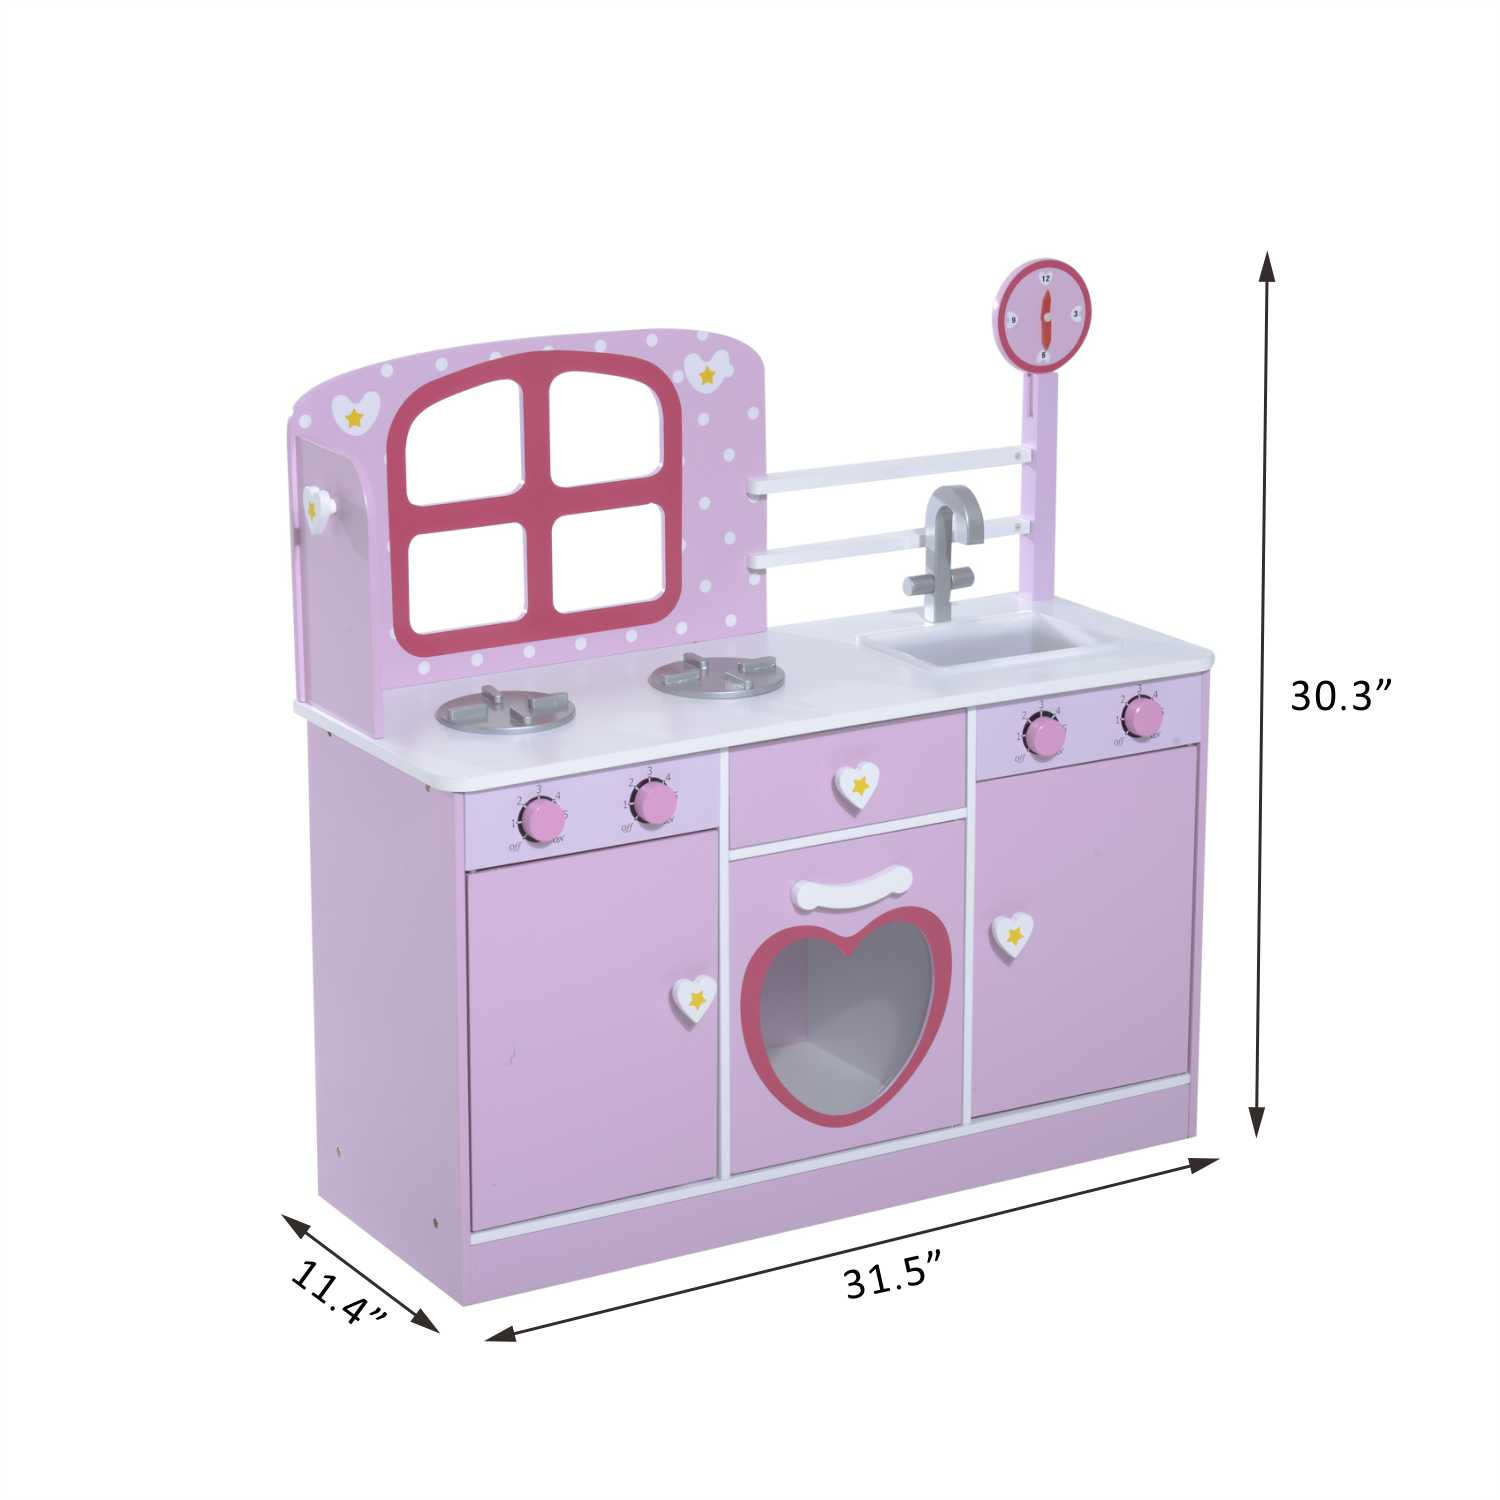 kids kitchen appliances price pfister treviso faucet new wood children pretend play set cooking